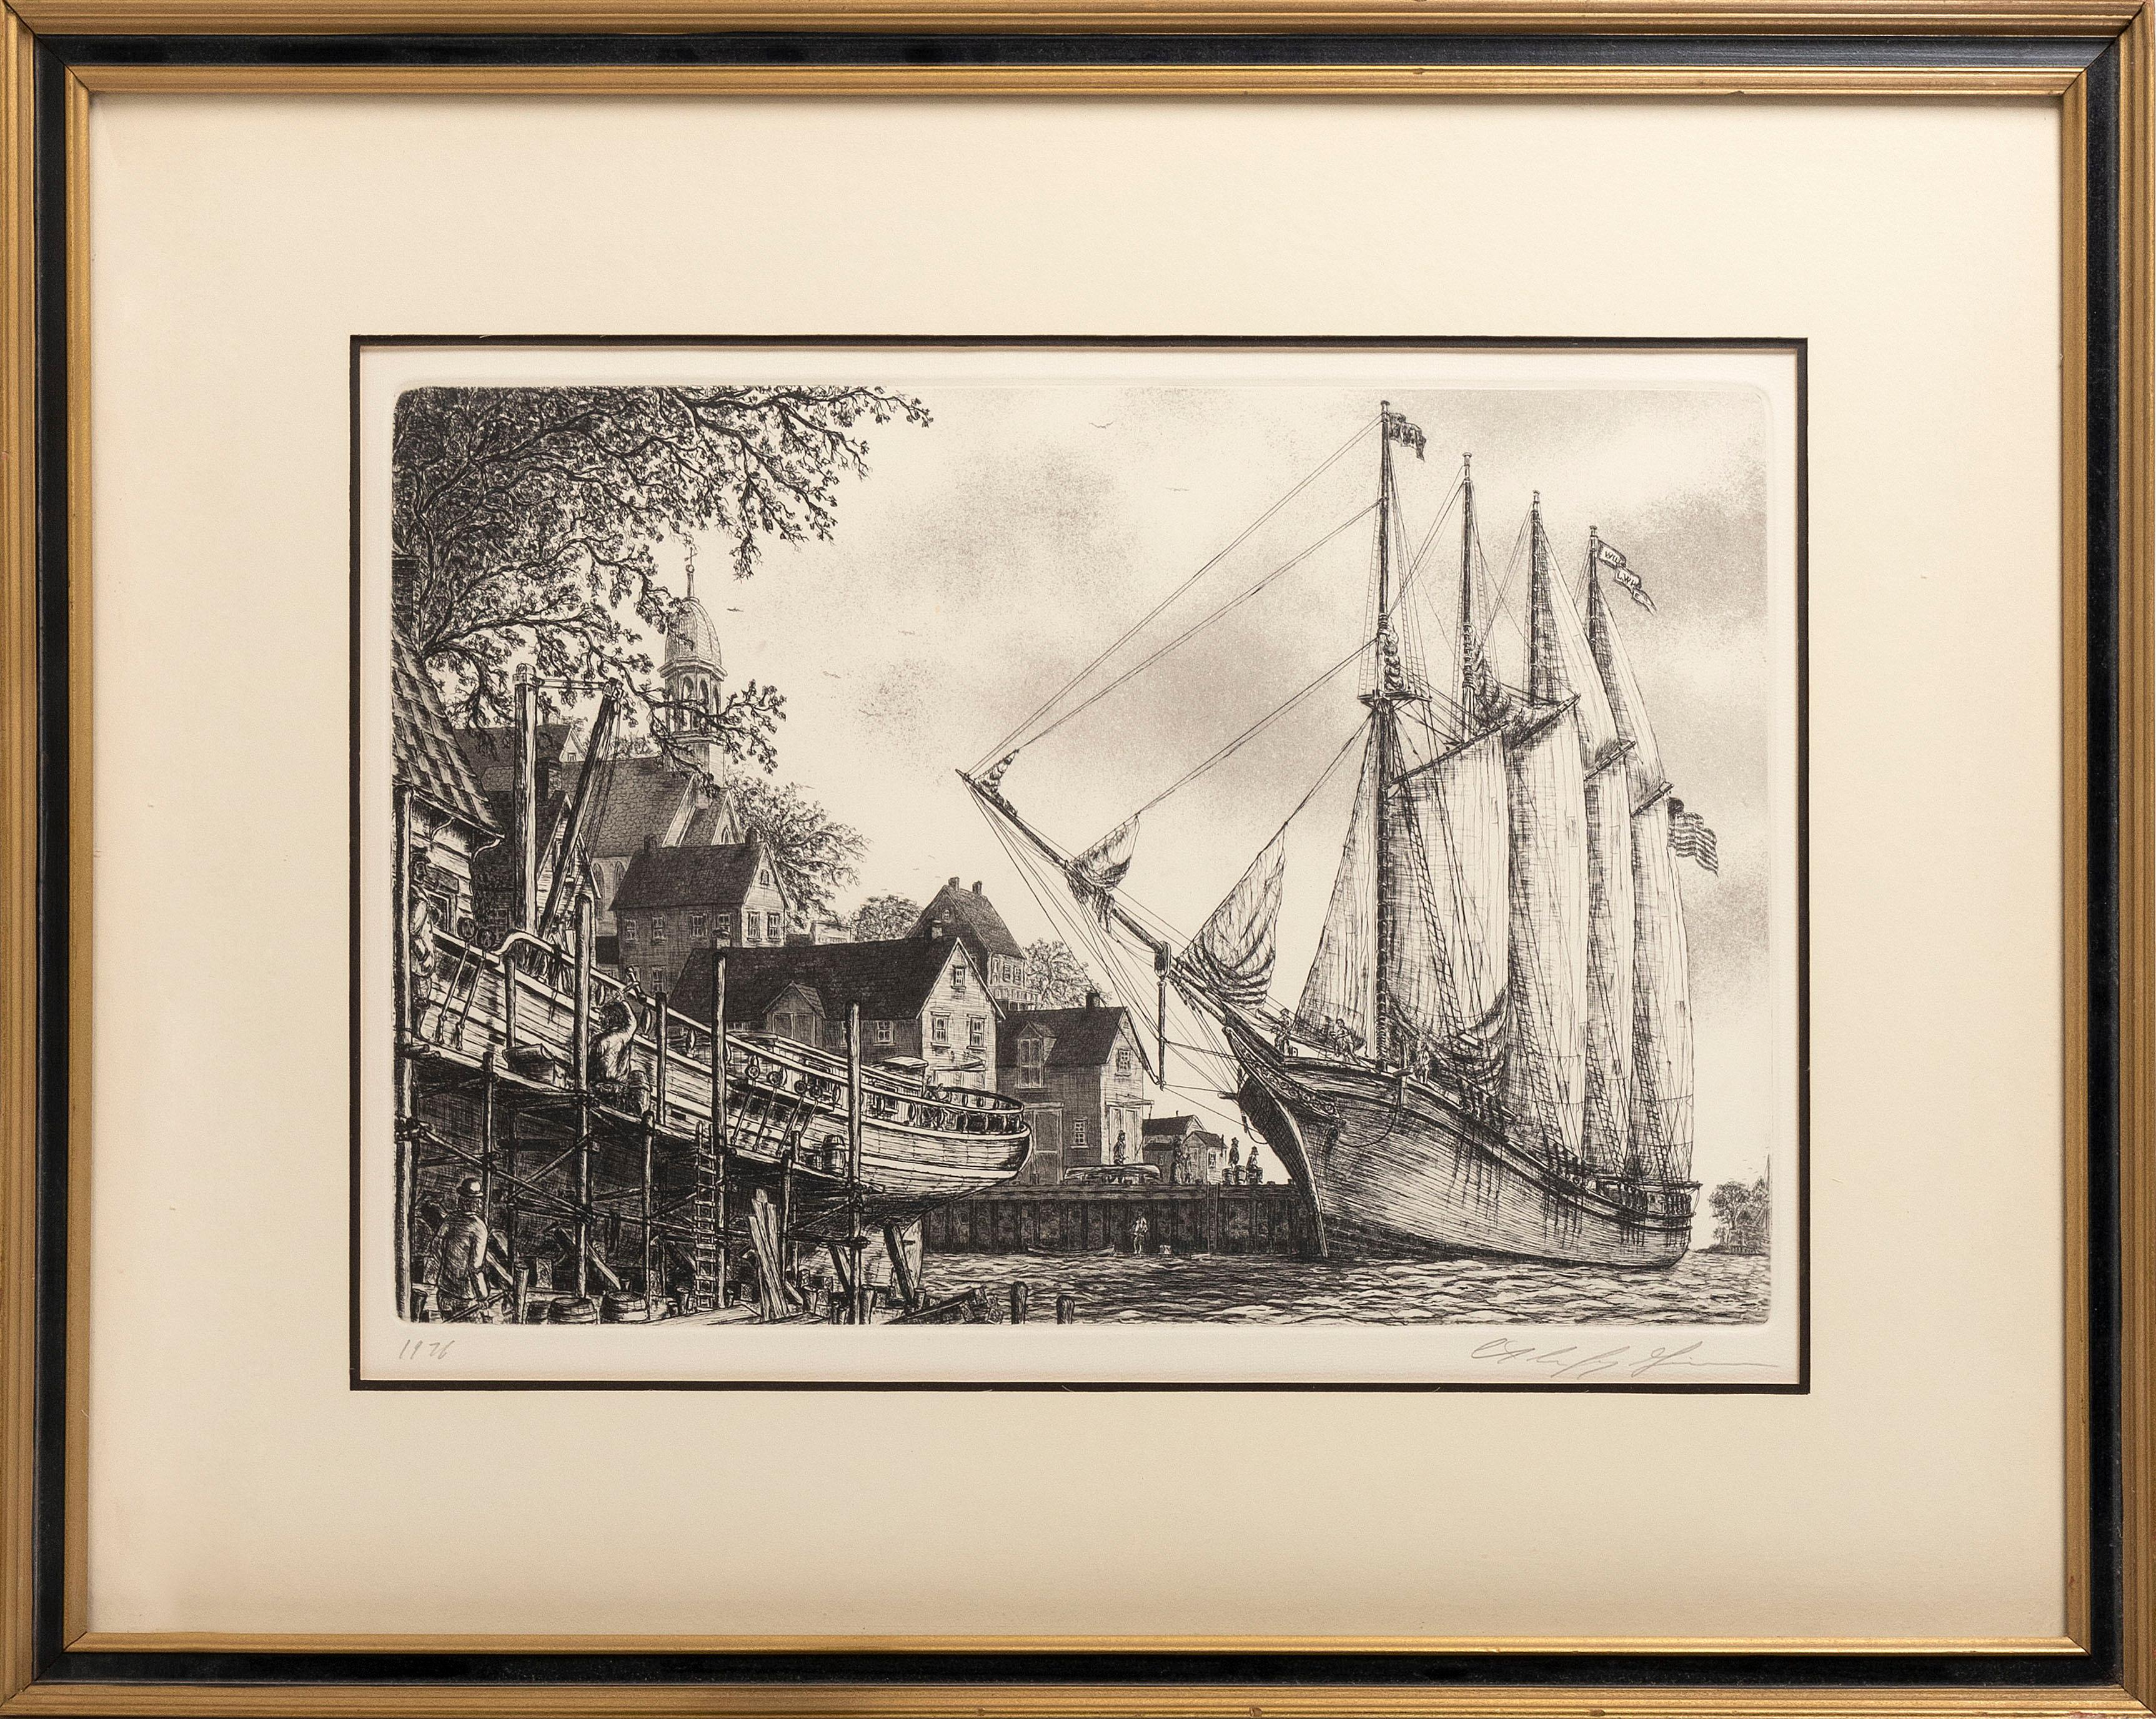 """AMERICAN SCHOOL, 20th Century, New England harbor scene, possibly Nantucket., Etching, 13"""" x 18"""" sight. Framed 21.5"""" x 27.5""""."""